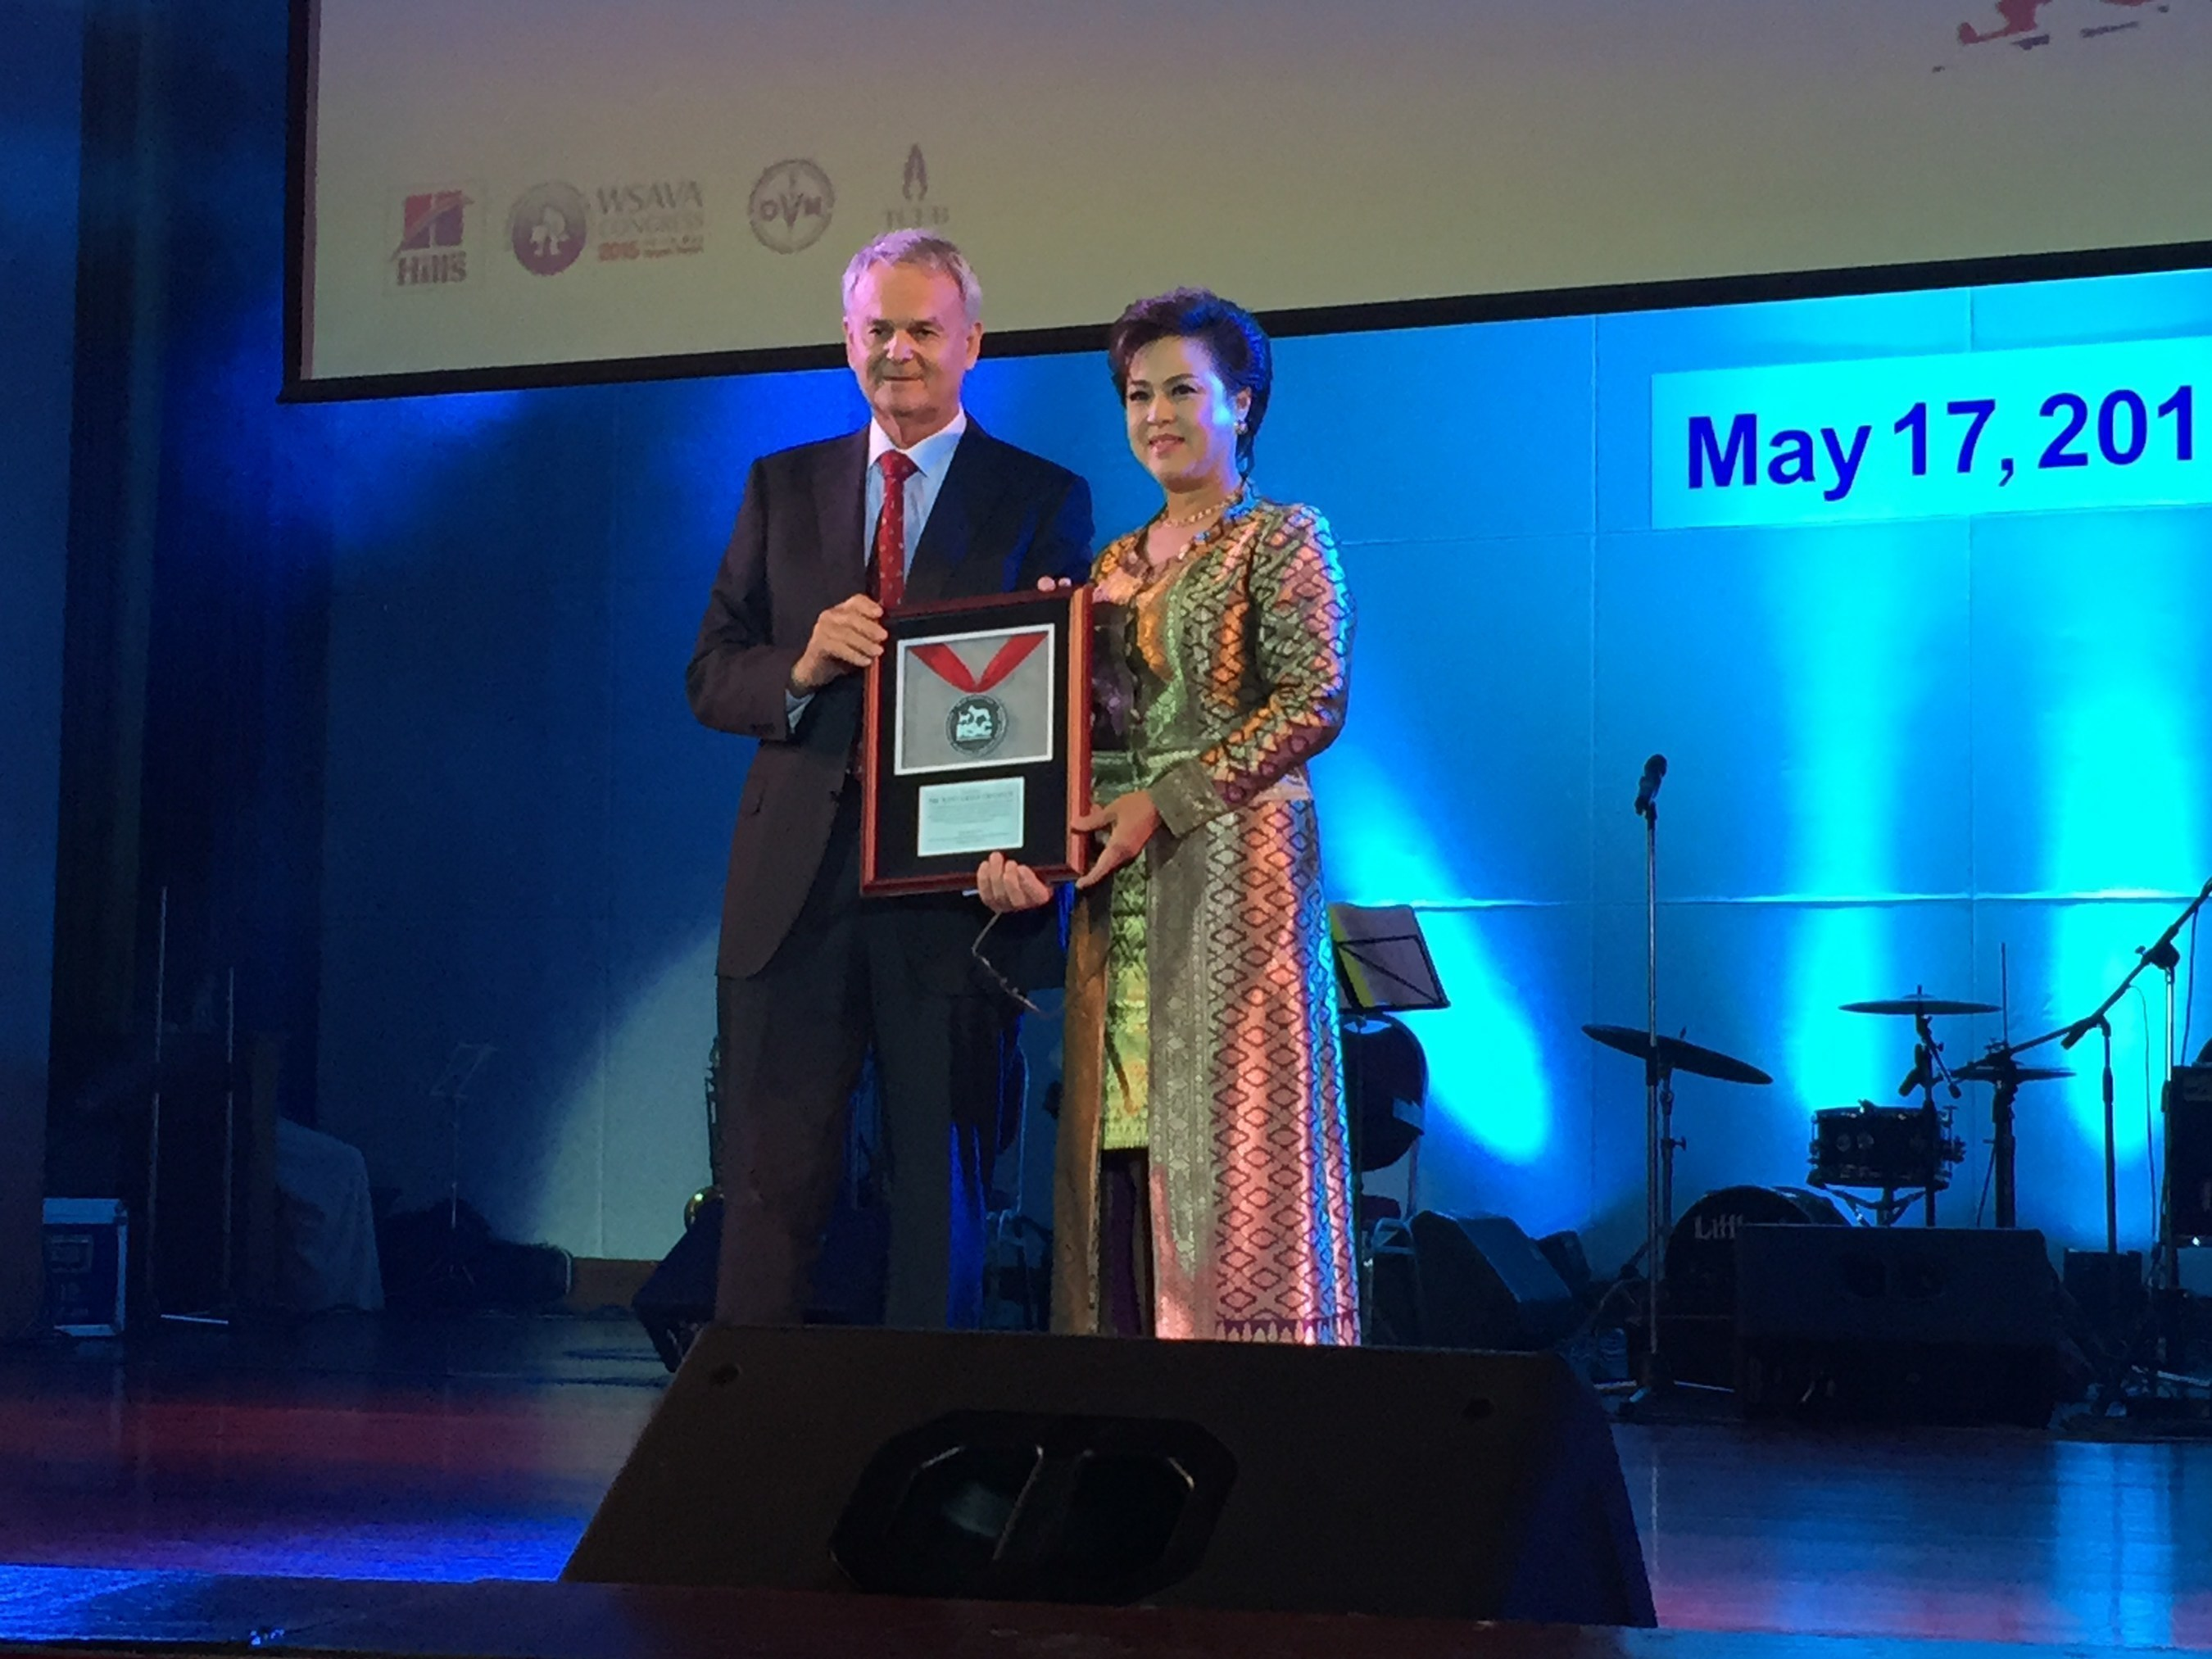 Dr. Nantarika Chansue, a noted turtle and tortoise veterinarian, is the recipient of the third annual Henry Schein Cares International Veterinary Community Service Award. The award was presented at the recent Gala Dinner of the 2015 World Small Animal Veterinary Association World Congress (WSAVA 2015), held in Bangkok, Thailand. Dr. Nigel Nichols, Vice President, International Animal Health Group - APAC Region, Henry Schein, presented the award to Dr. Chansue.